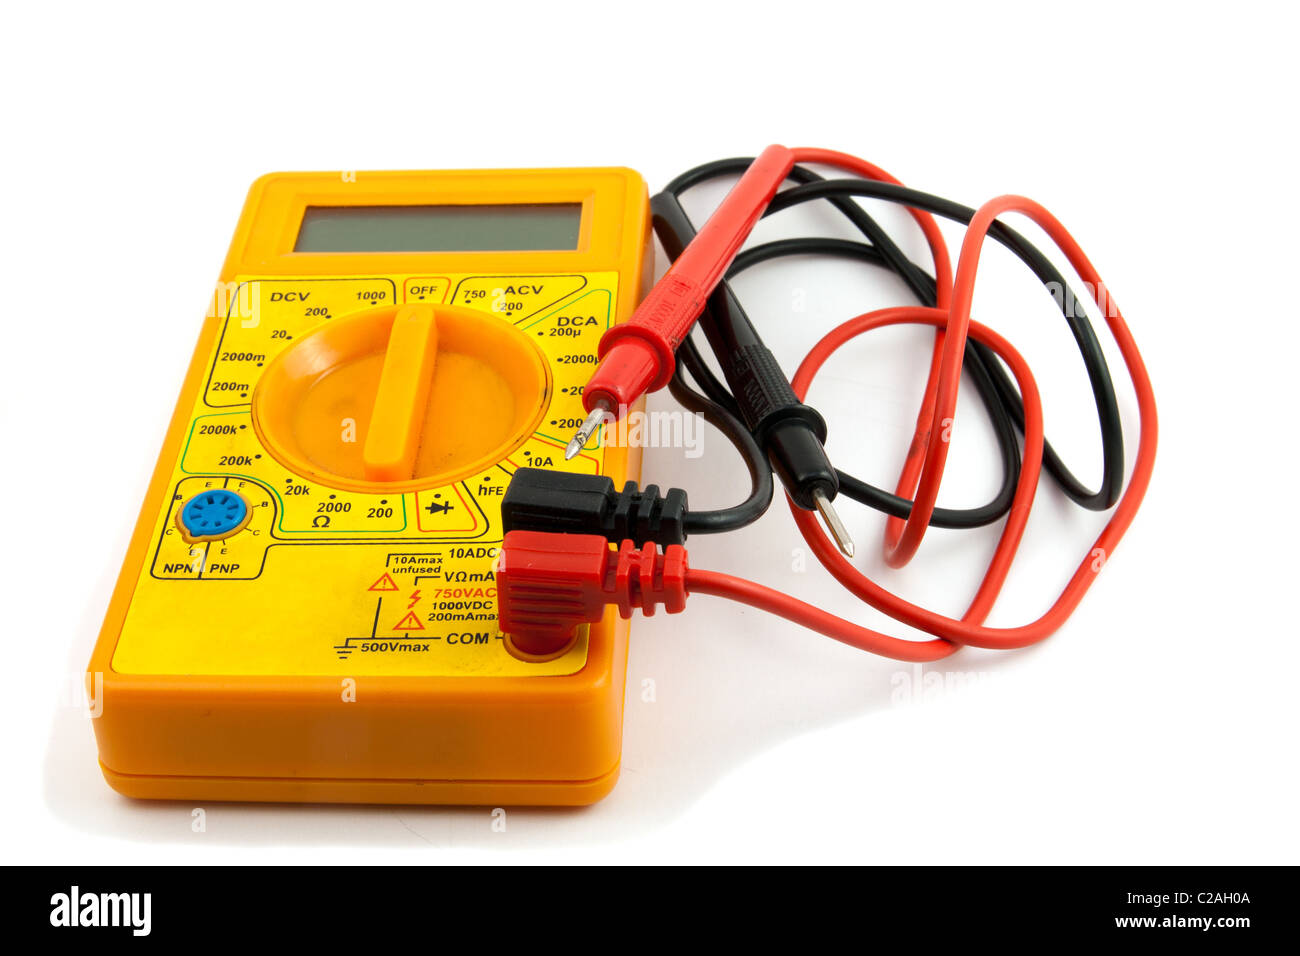 Remarkable Electrical Tester Stock Photos Electrical Tester Stock Images Alamy Wiring Digital Resources Cettecompassionincorg